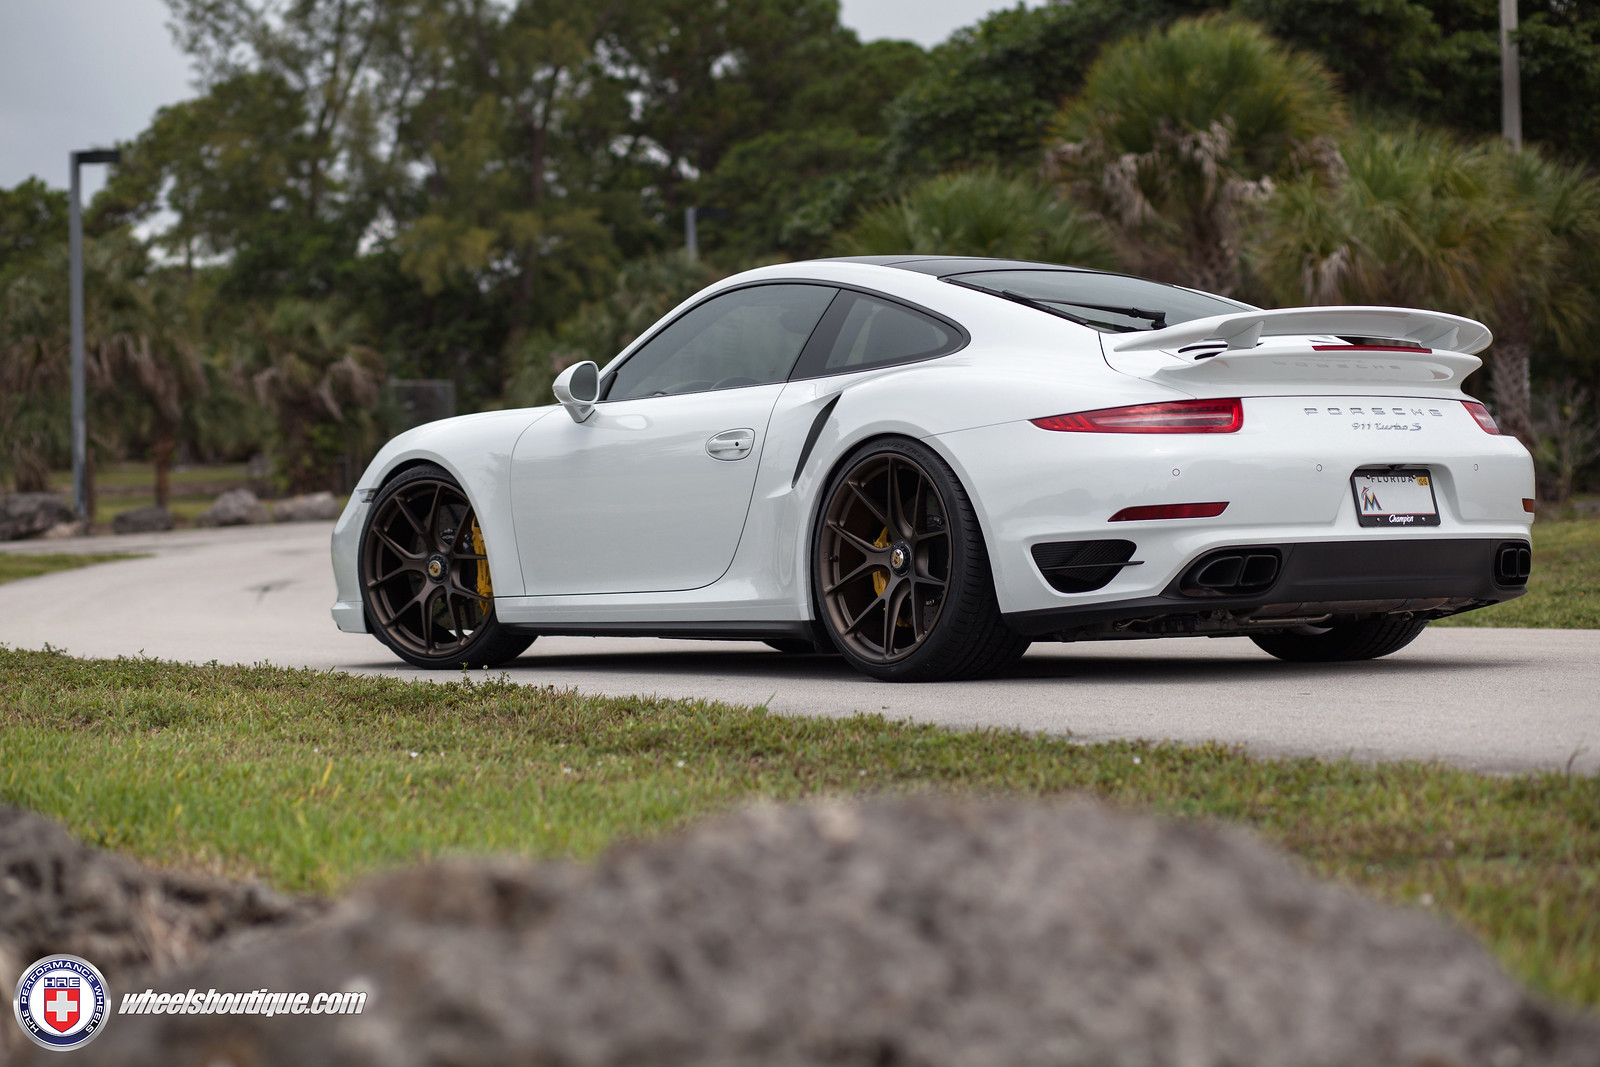 Hre Wheels Porsche Turbo on bmw m5 hre wheels, bmw z4 hre wheels, porsche 991 turbo, audi r8 hre wheels, porsche 991 hot wheels, zo6 hre wheels, porsche 991 bbs, porsche 991 adv1, ford mustang hre wheels, porsche 991 techart, corvette stingray hre wheels, porsche 991 vorsteiner,